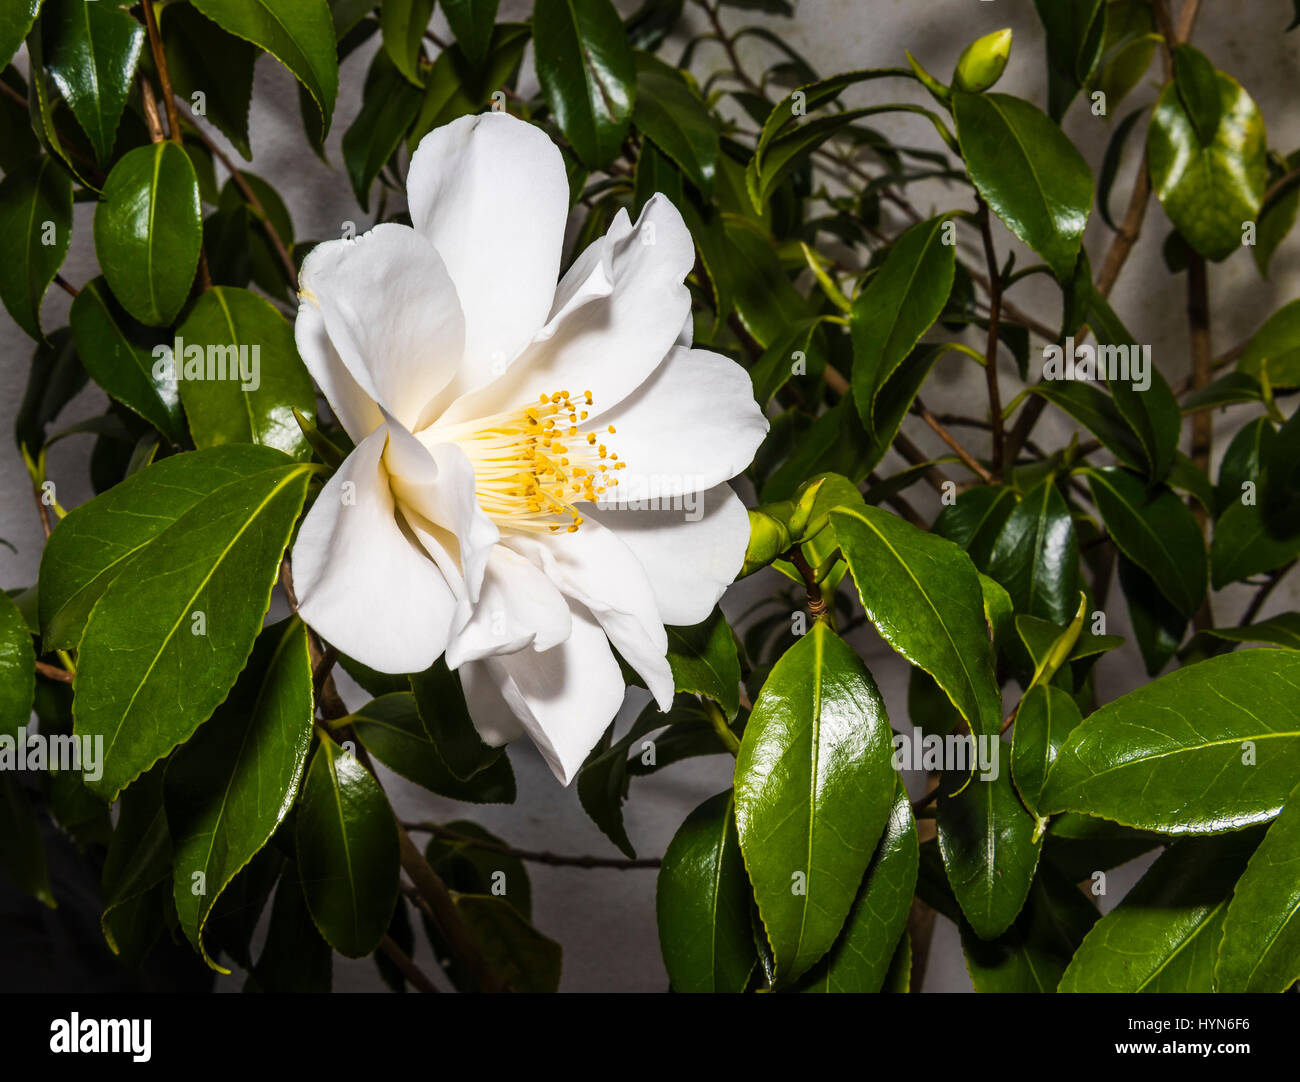 Glorious white Camellia caught in a north London garden, UK - Stock Image